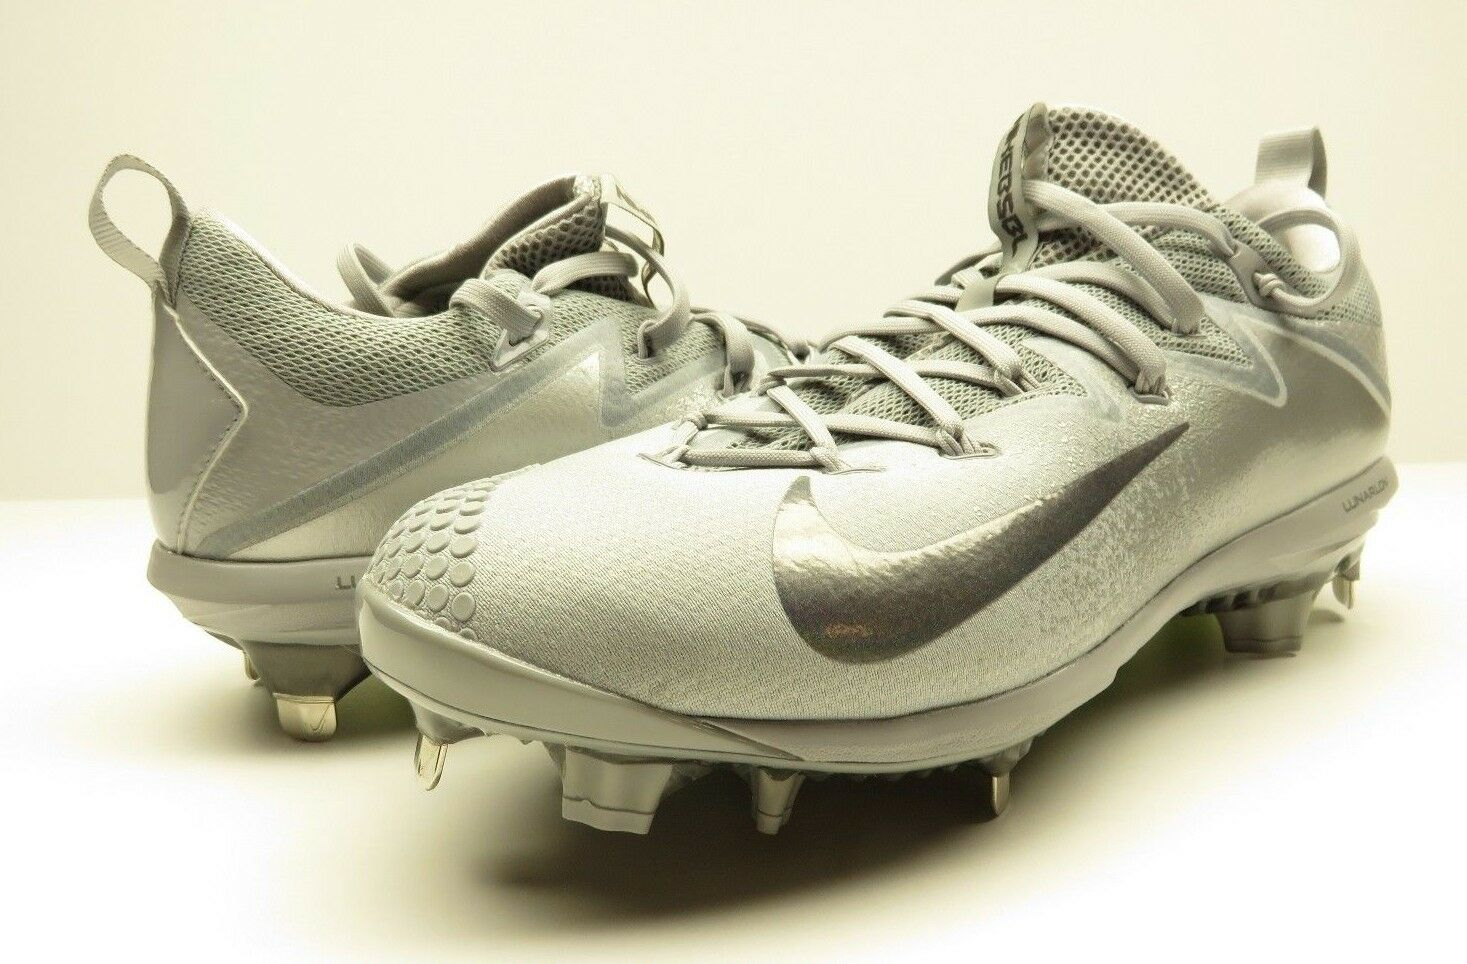 NEW w/o BOX Nike BSBL Silver Baseball Cleats Men's Size 11.5 Made in Vietnam